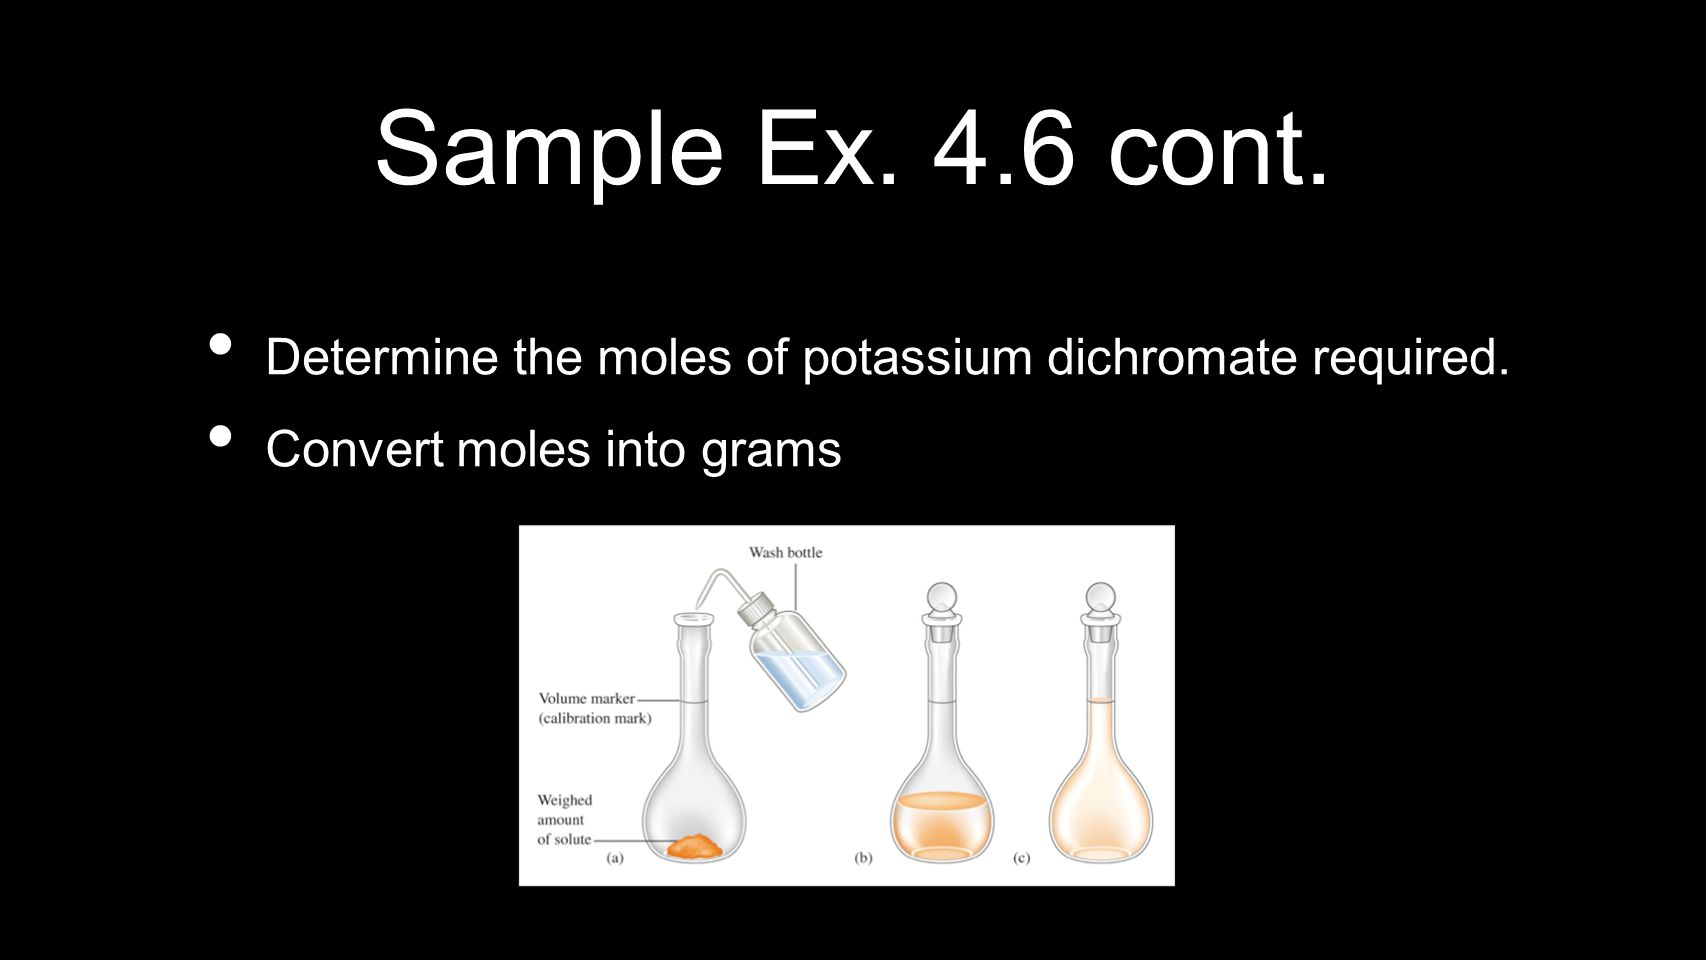 Sample Ex. 4.6 cont. Determine the moles of potassium dichromate required. Convert moles into grams